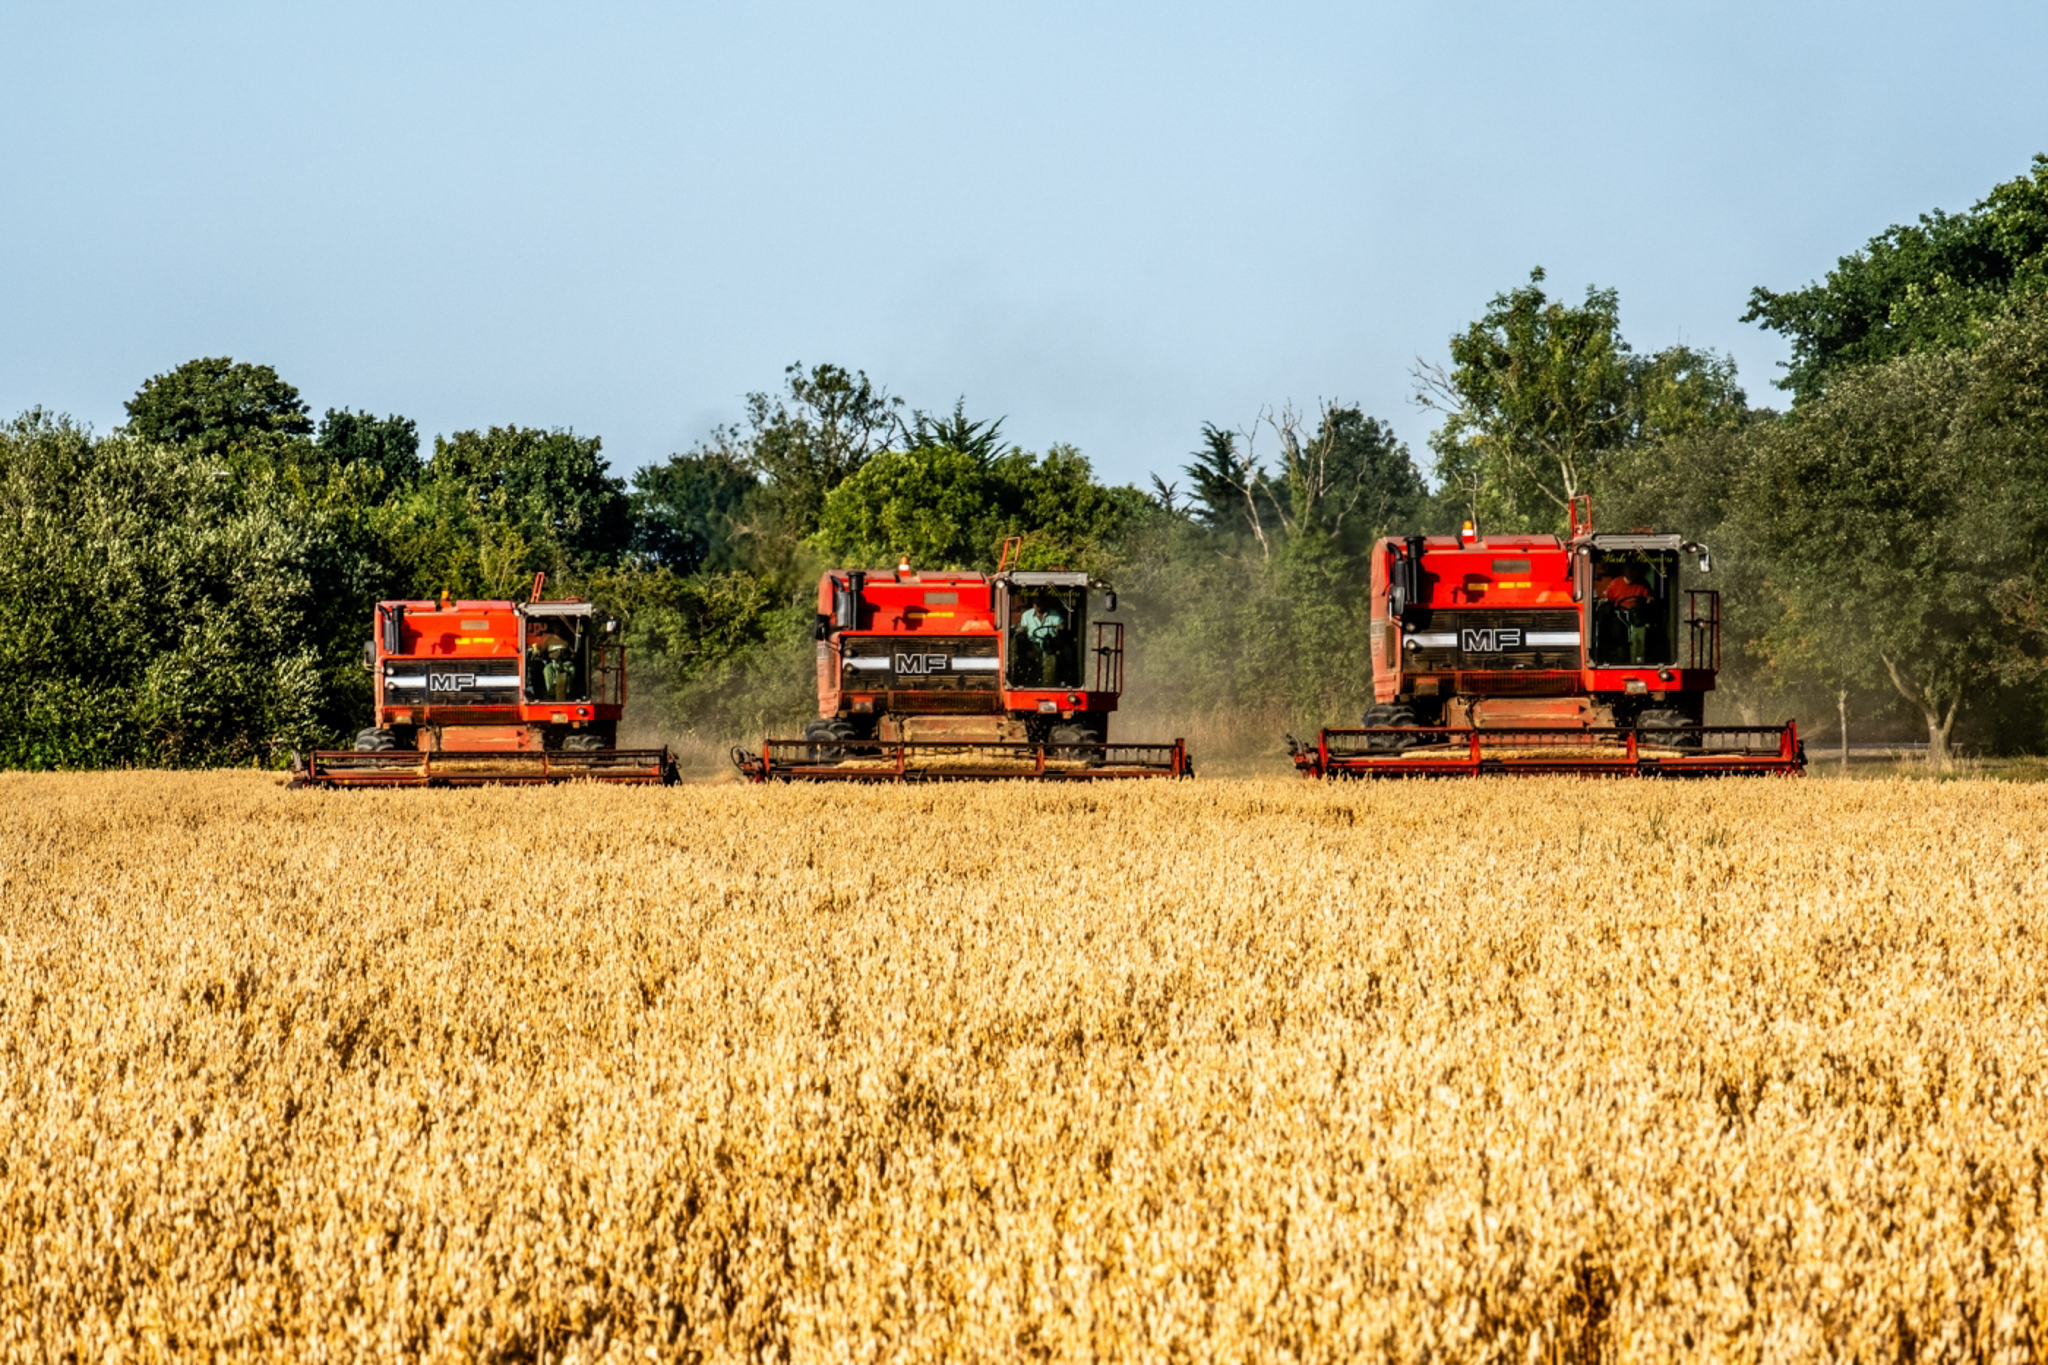 trio-of-vintage-combines-by-neal-trafankowski